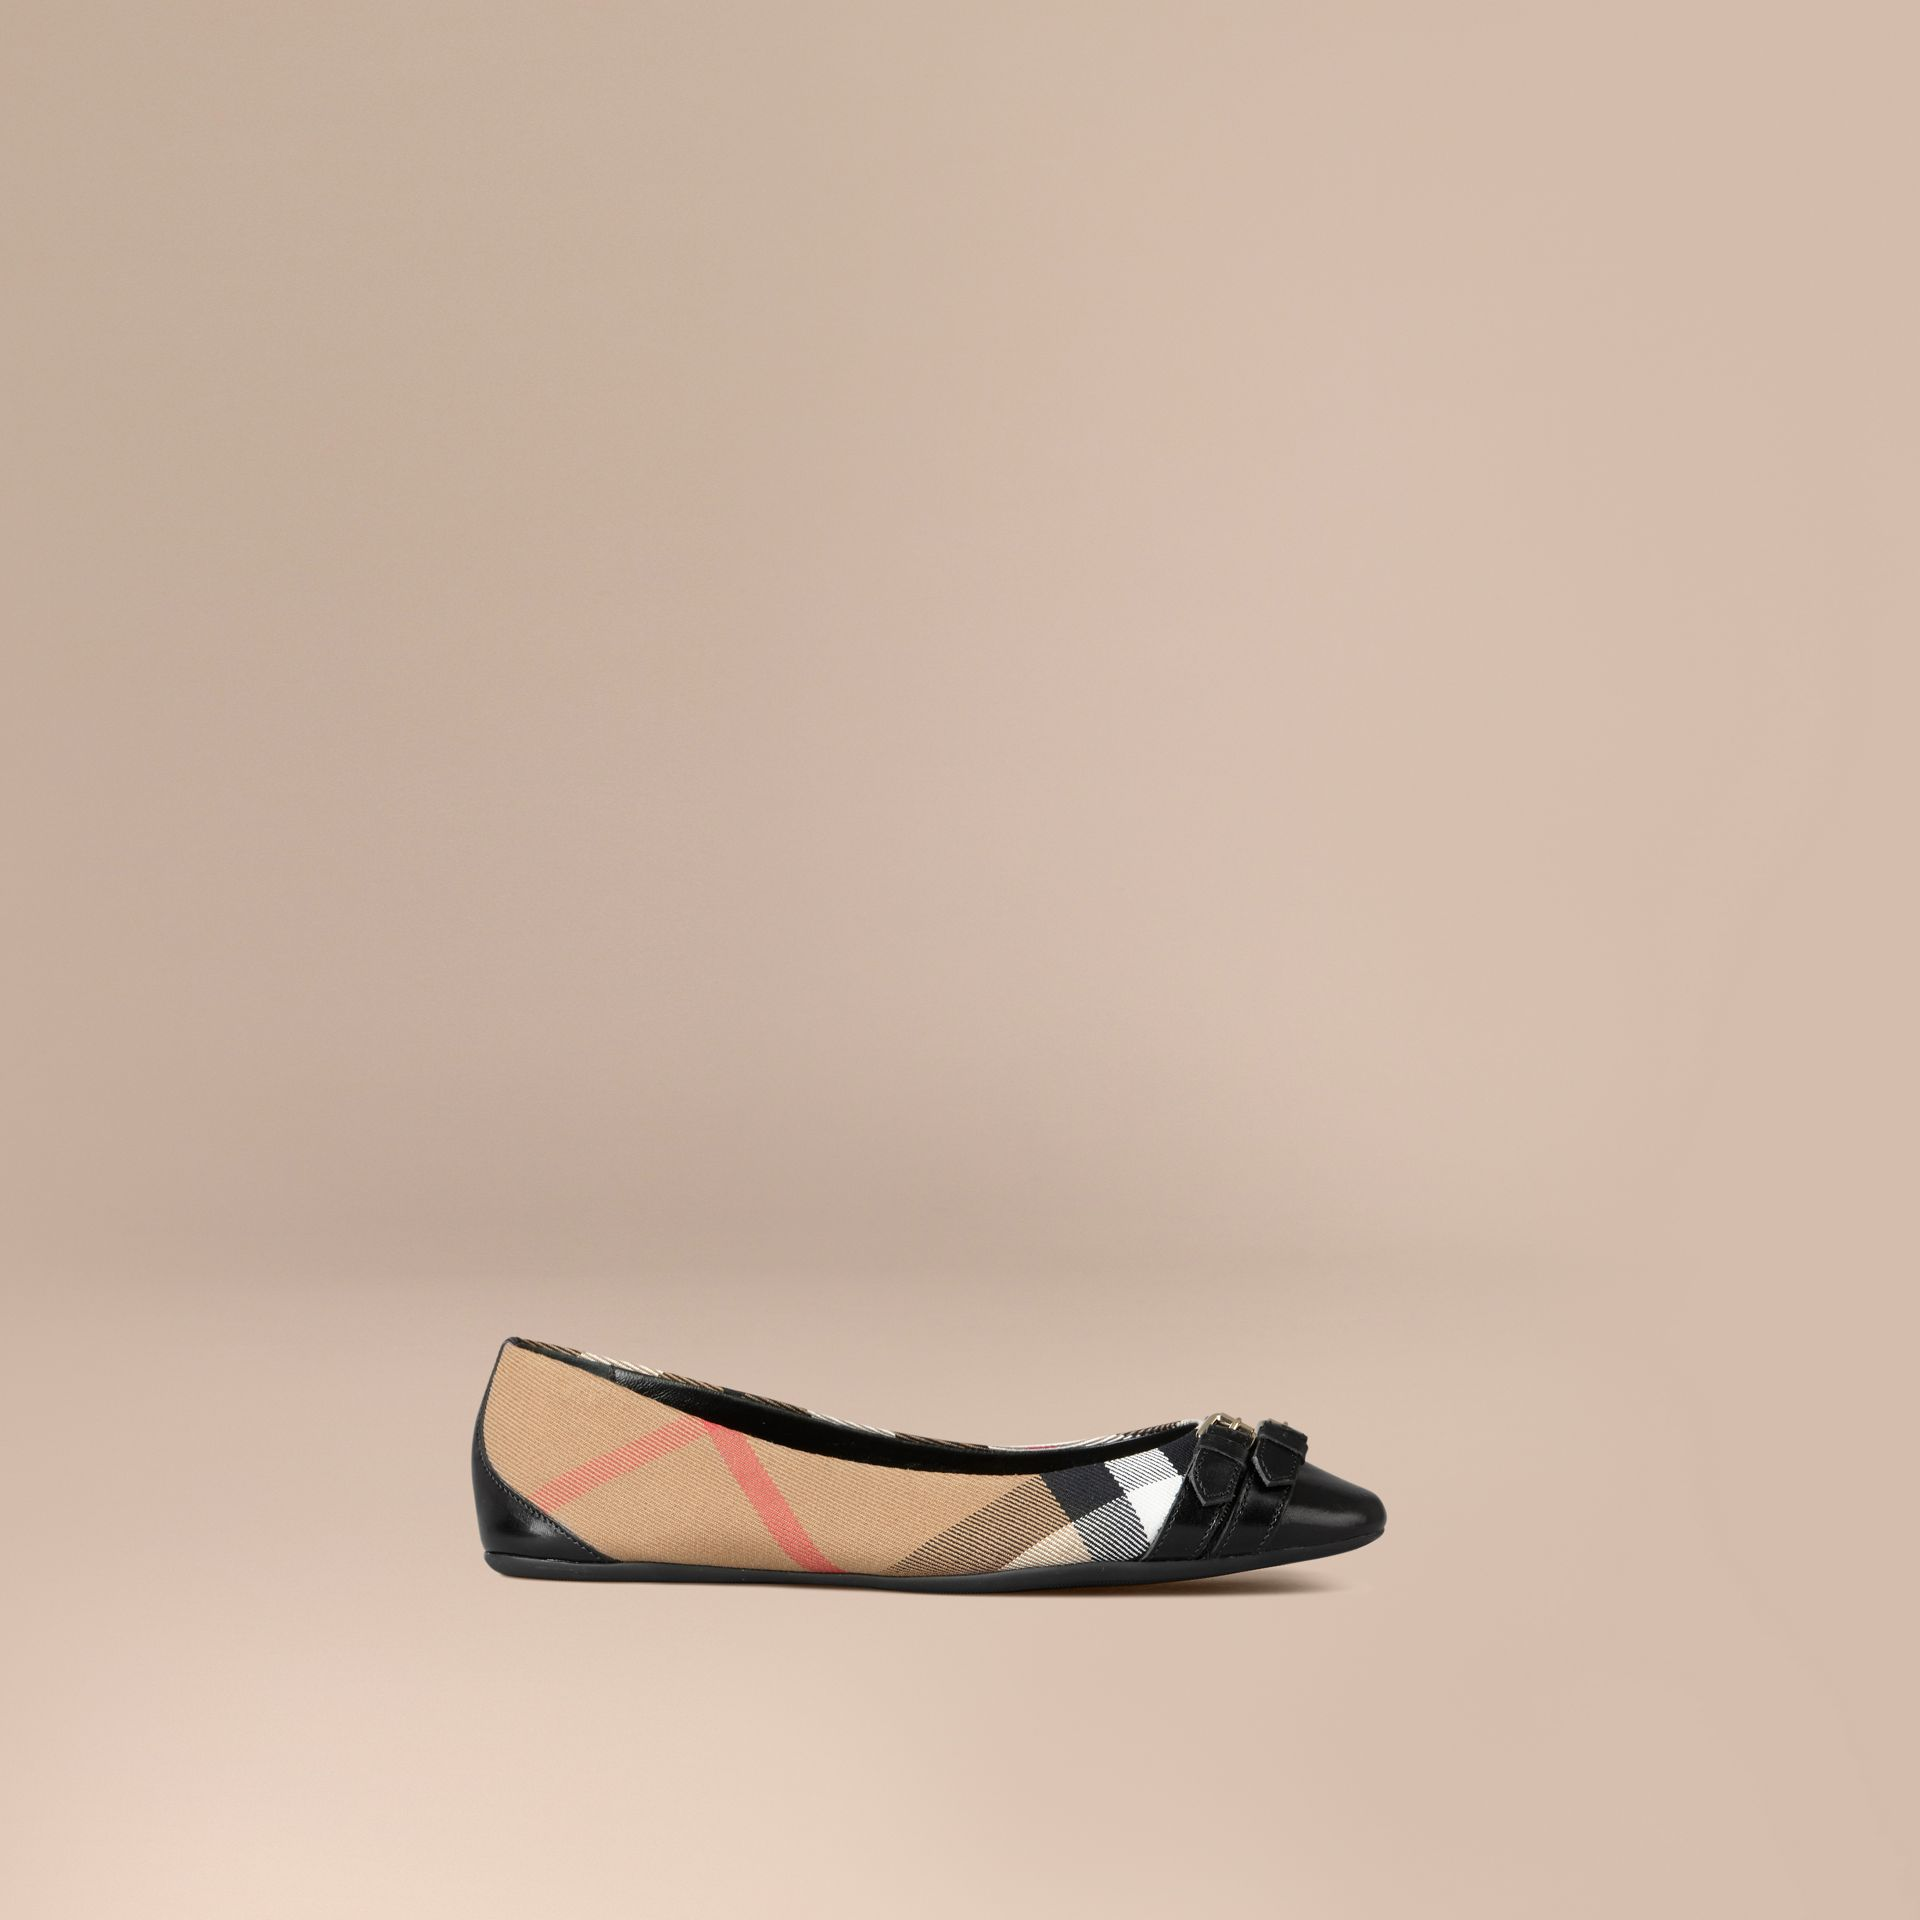 Bridle House Check Ballerinas in Black - Women | Burberry - gallery image 1